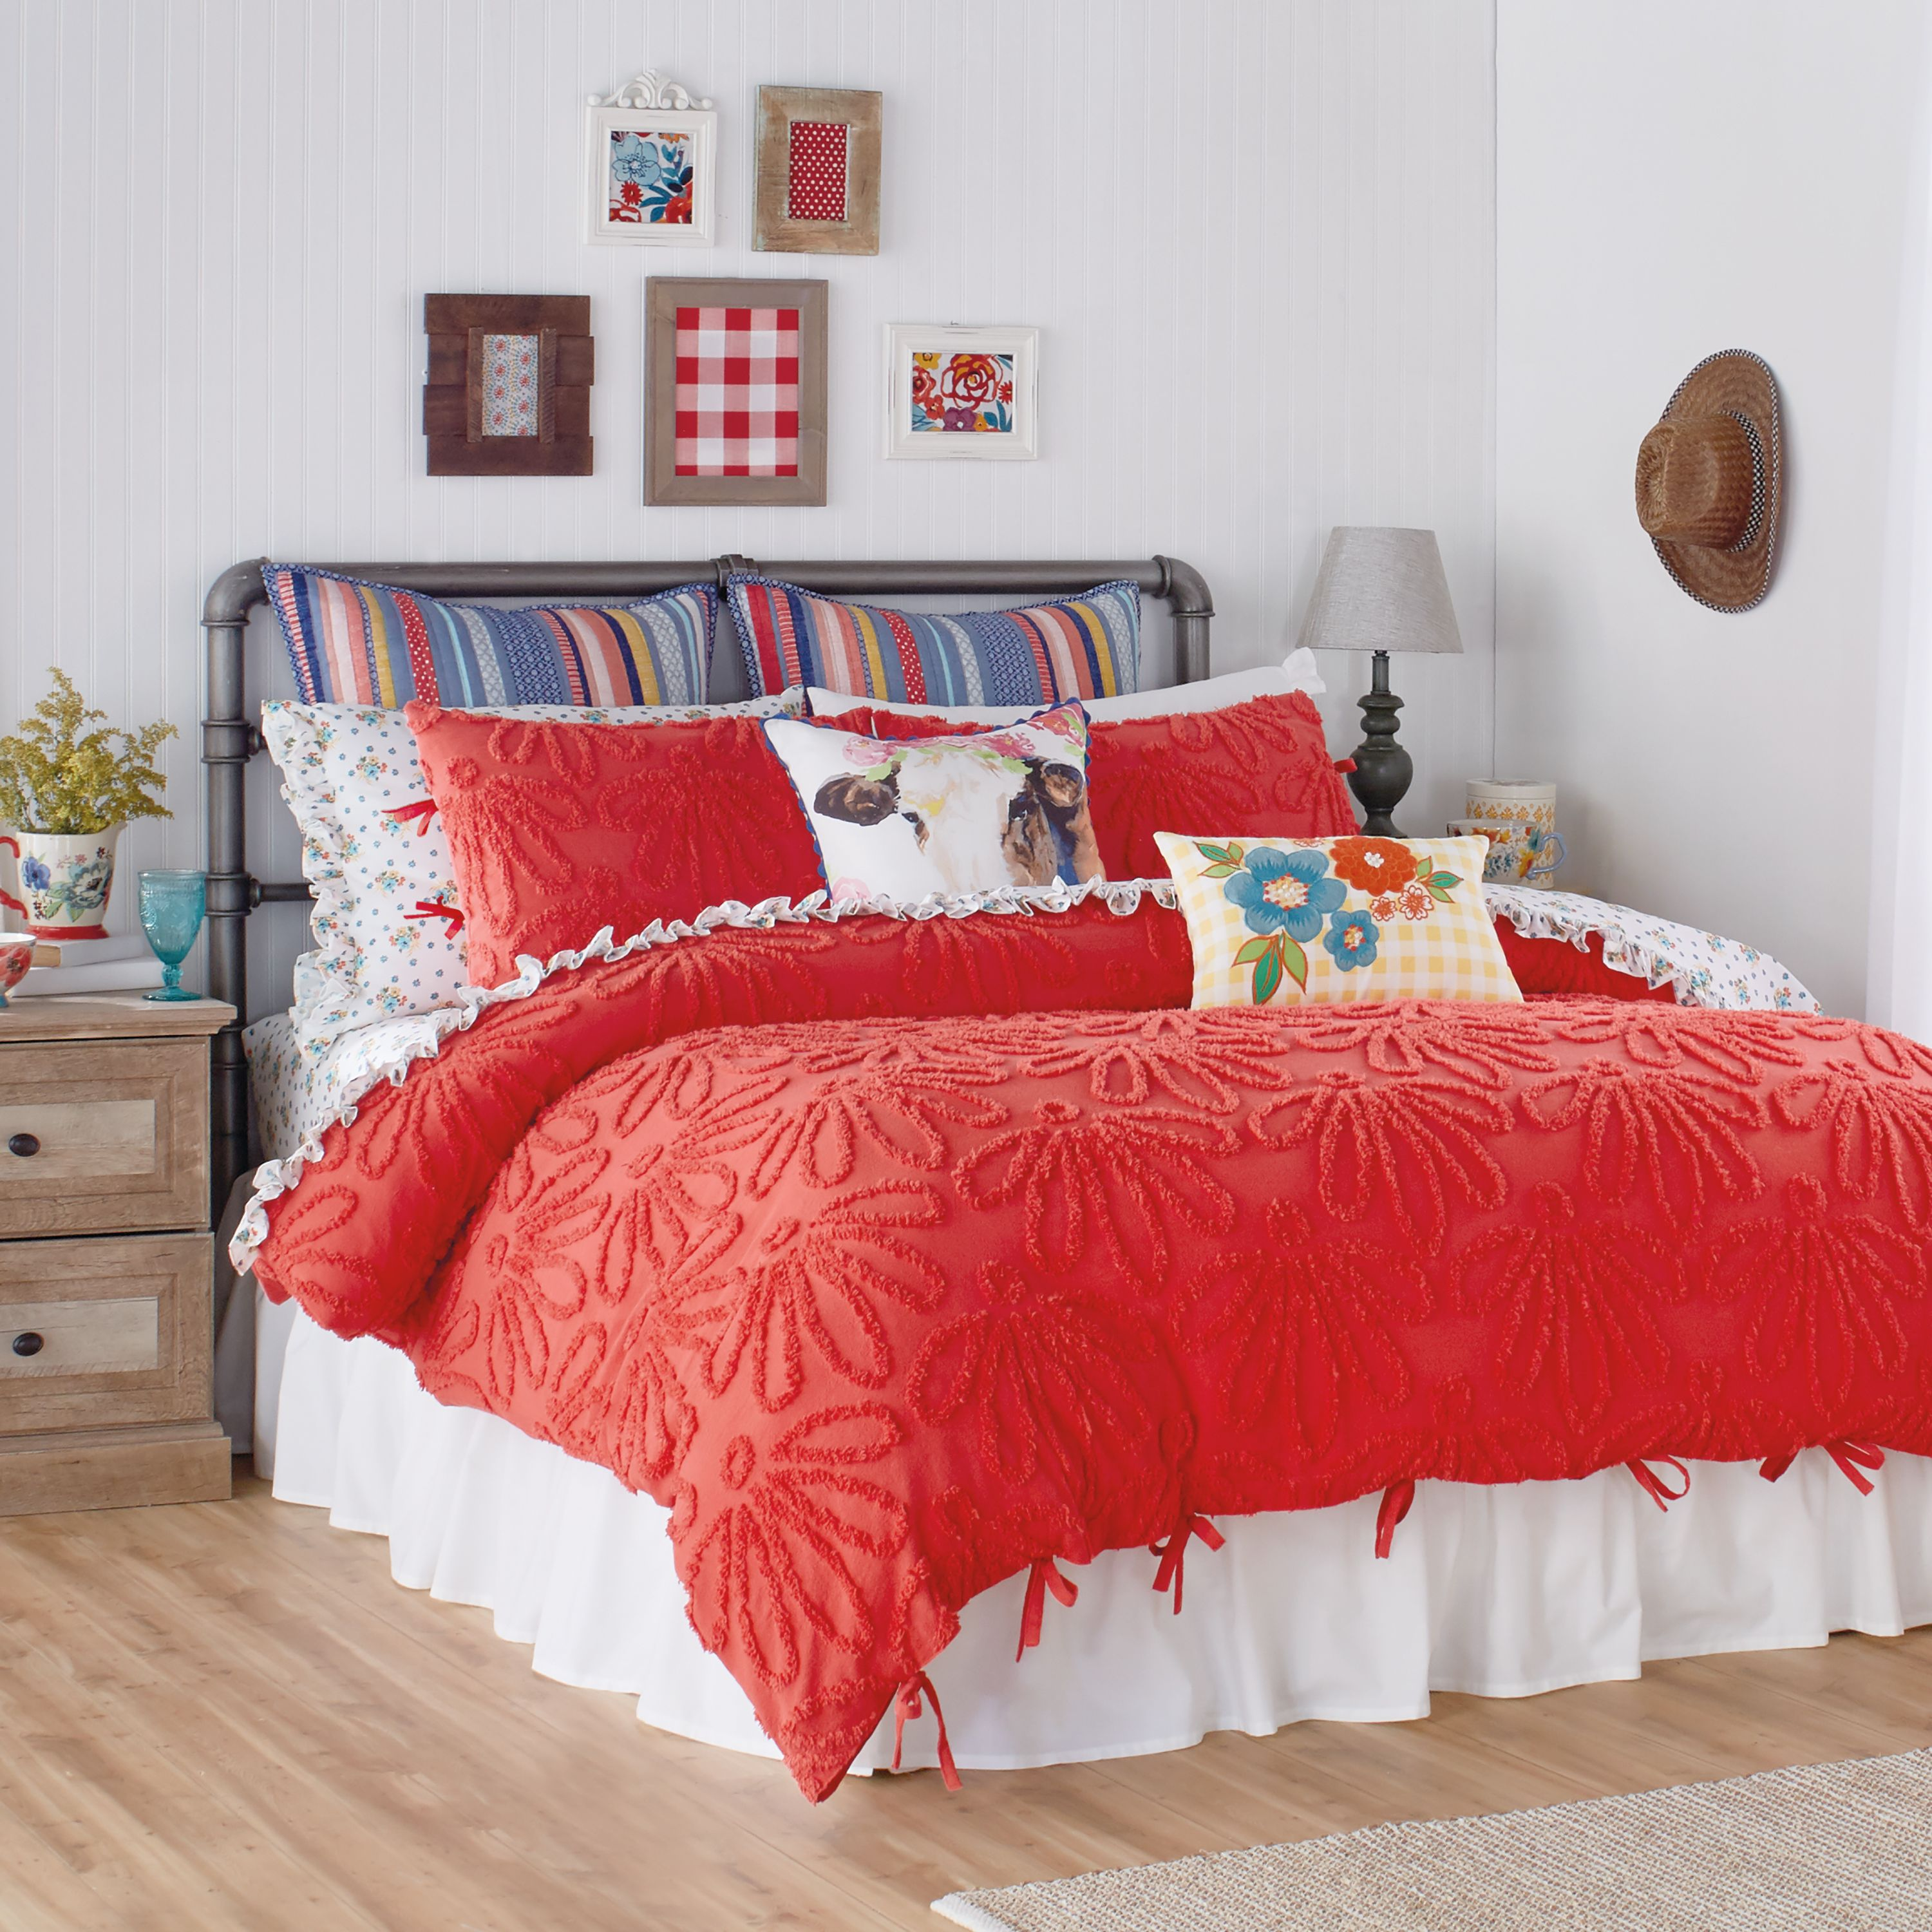 See 'Pioneer Woman' Star Ree Drummond's New Fall Bedding Line at Walmart